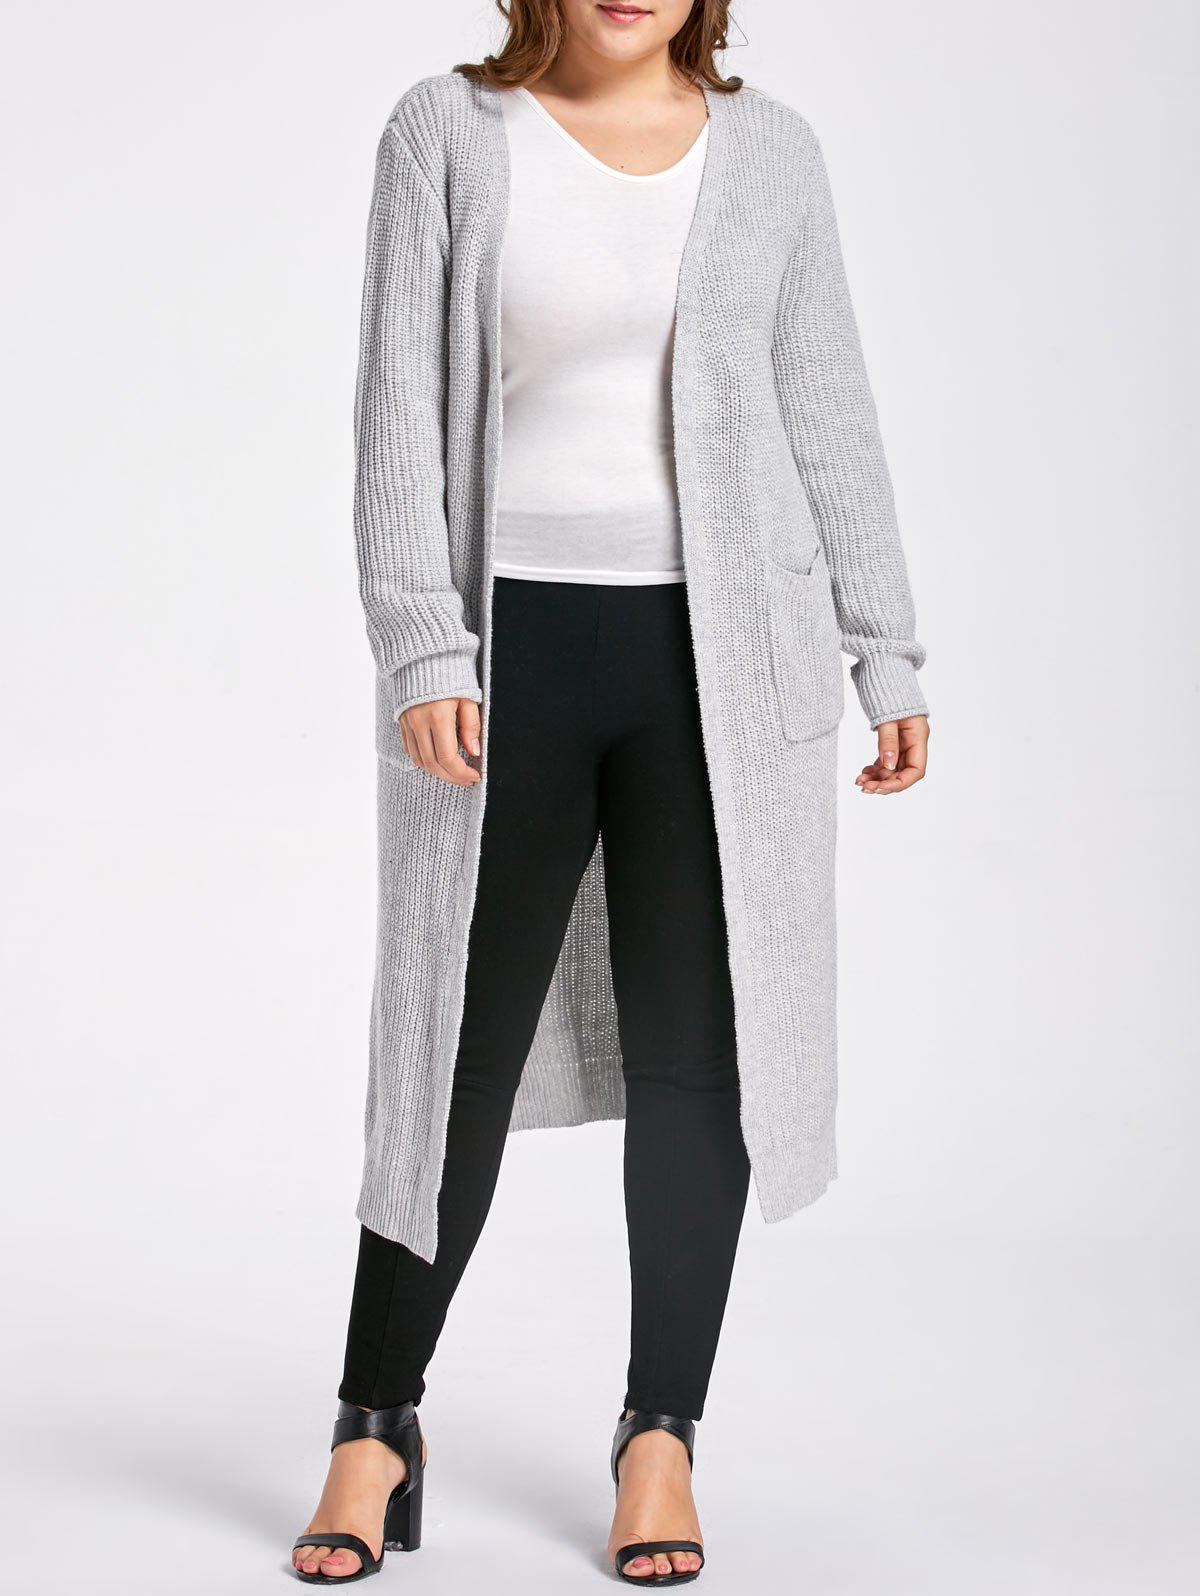 Plus Size Slit Open Front  Long Chunky Knit CardiganWOMEN<br><br>Size: 5XL; Color: GRAY; Type: Cardigans; Material: Cotton,Polyester; Sleeve Length: Full; Collar: Collarless; Style: Fashion; Season: Fall,Winter; Pattern Type: Solid; Elasticity: Elastic; Weight: 0.7200kg; Package Contents: 1 x Cardigan;